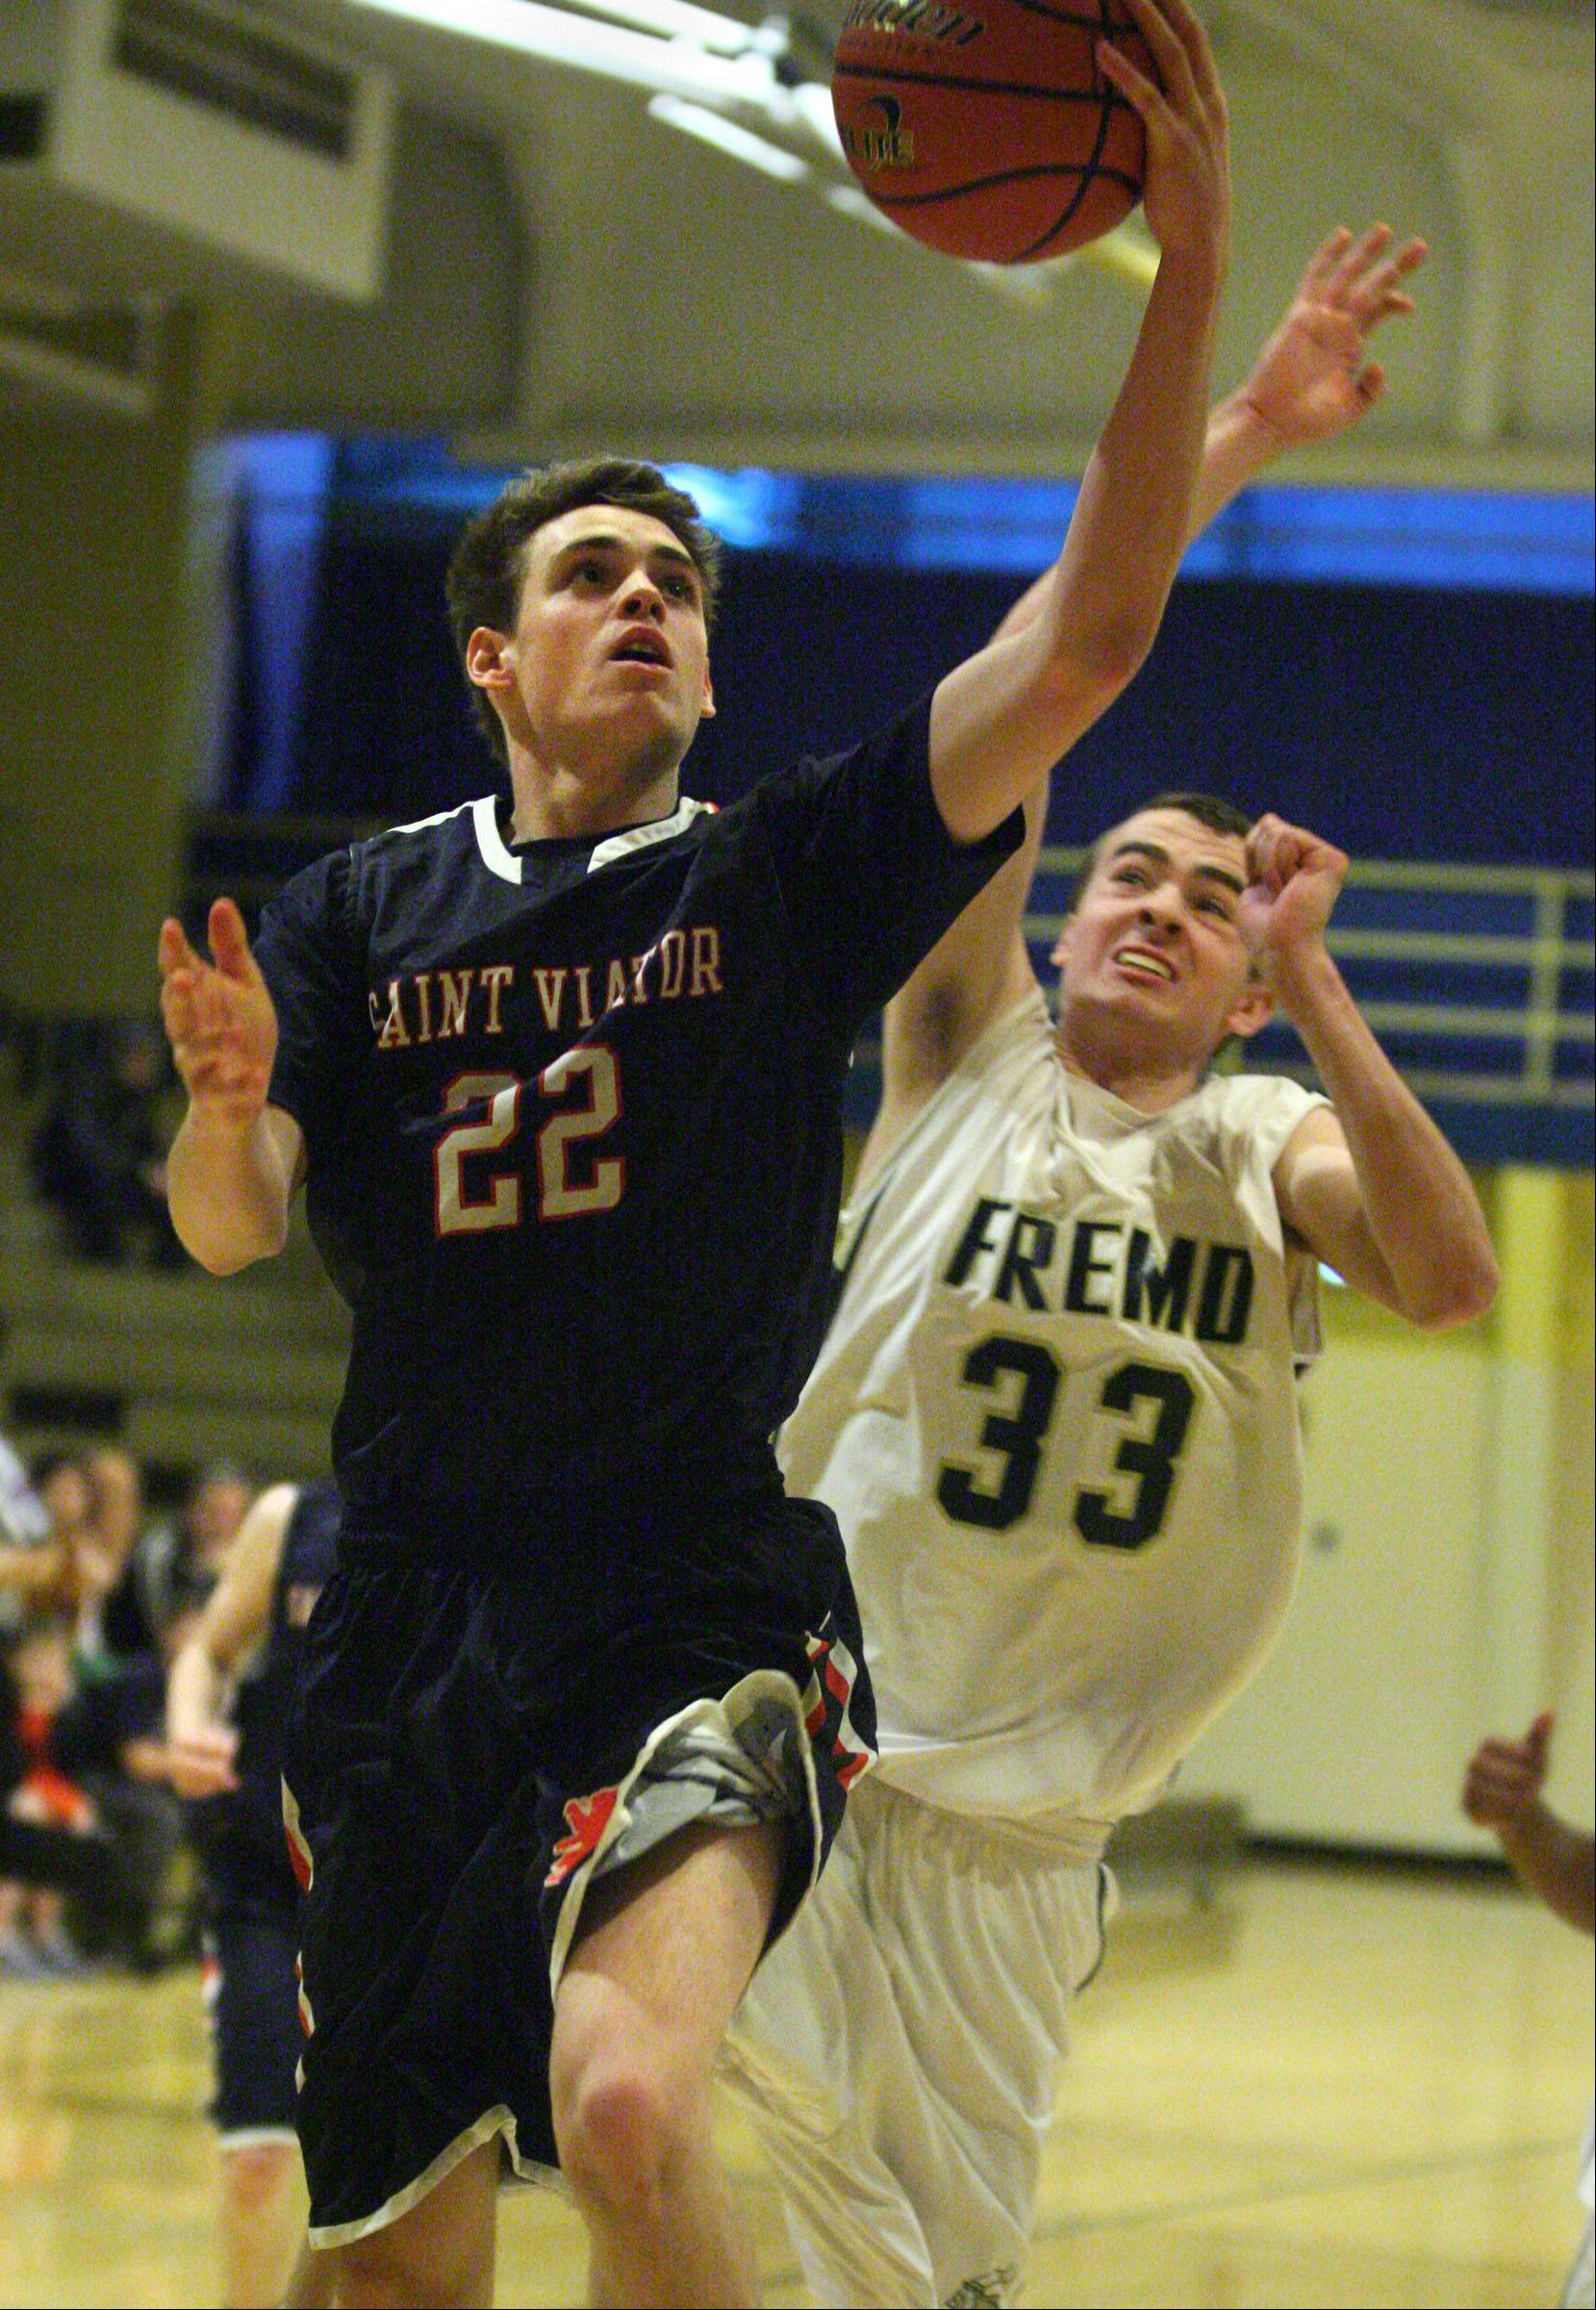 St. Viator's Patrick Martin shoots with Fremd defender Sean Benka trailing in the 35th annual Wheeling Wildcat Hardwood Classic on Thursday.